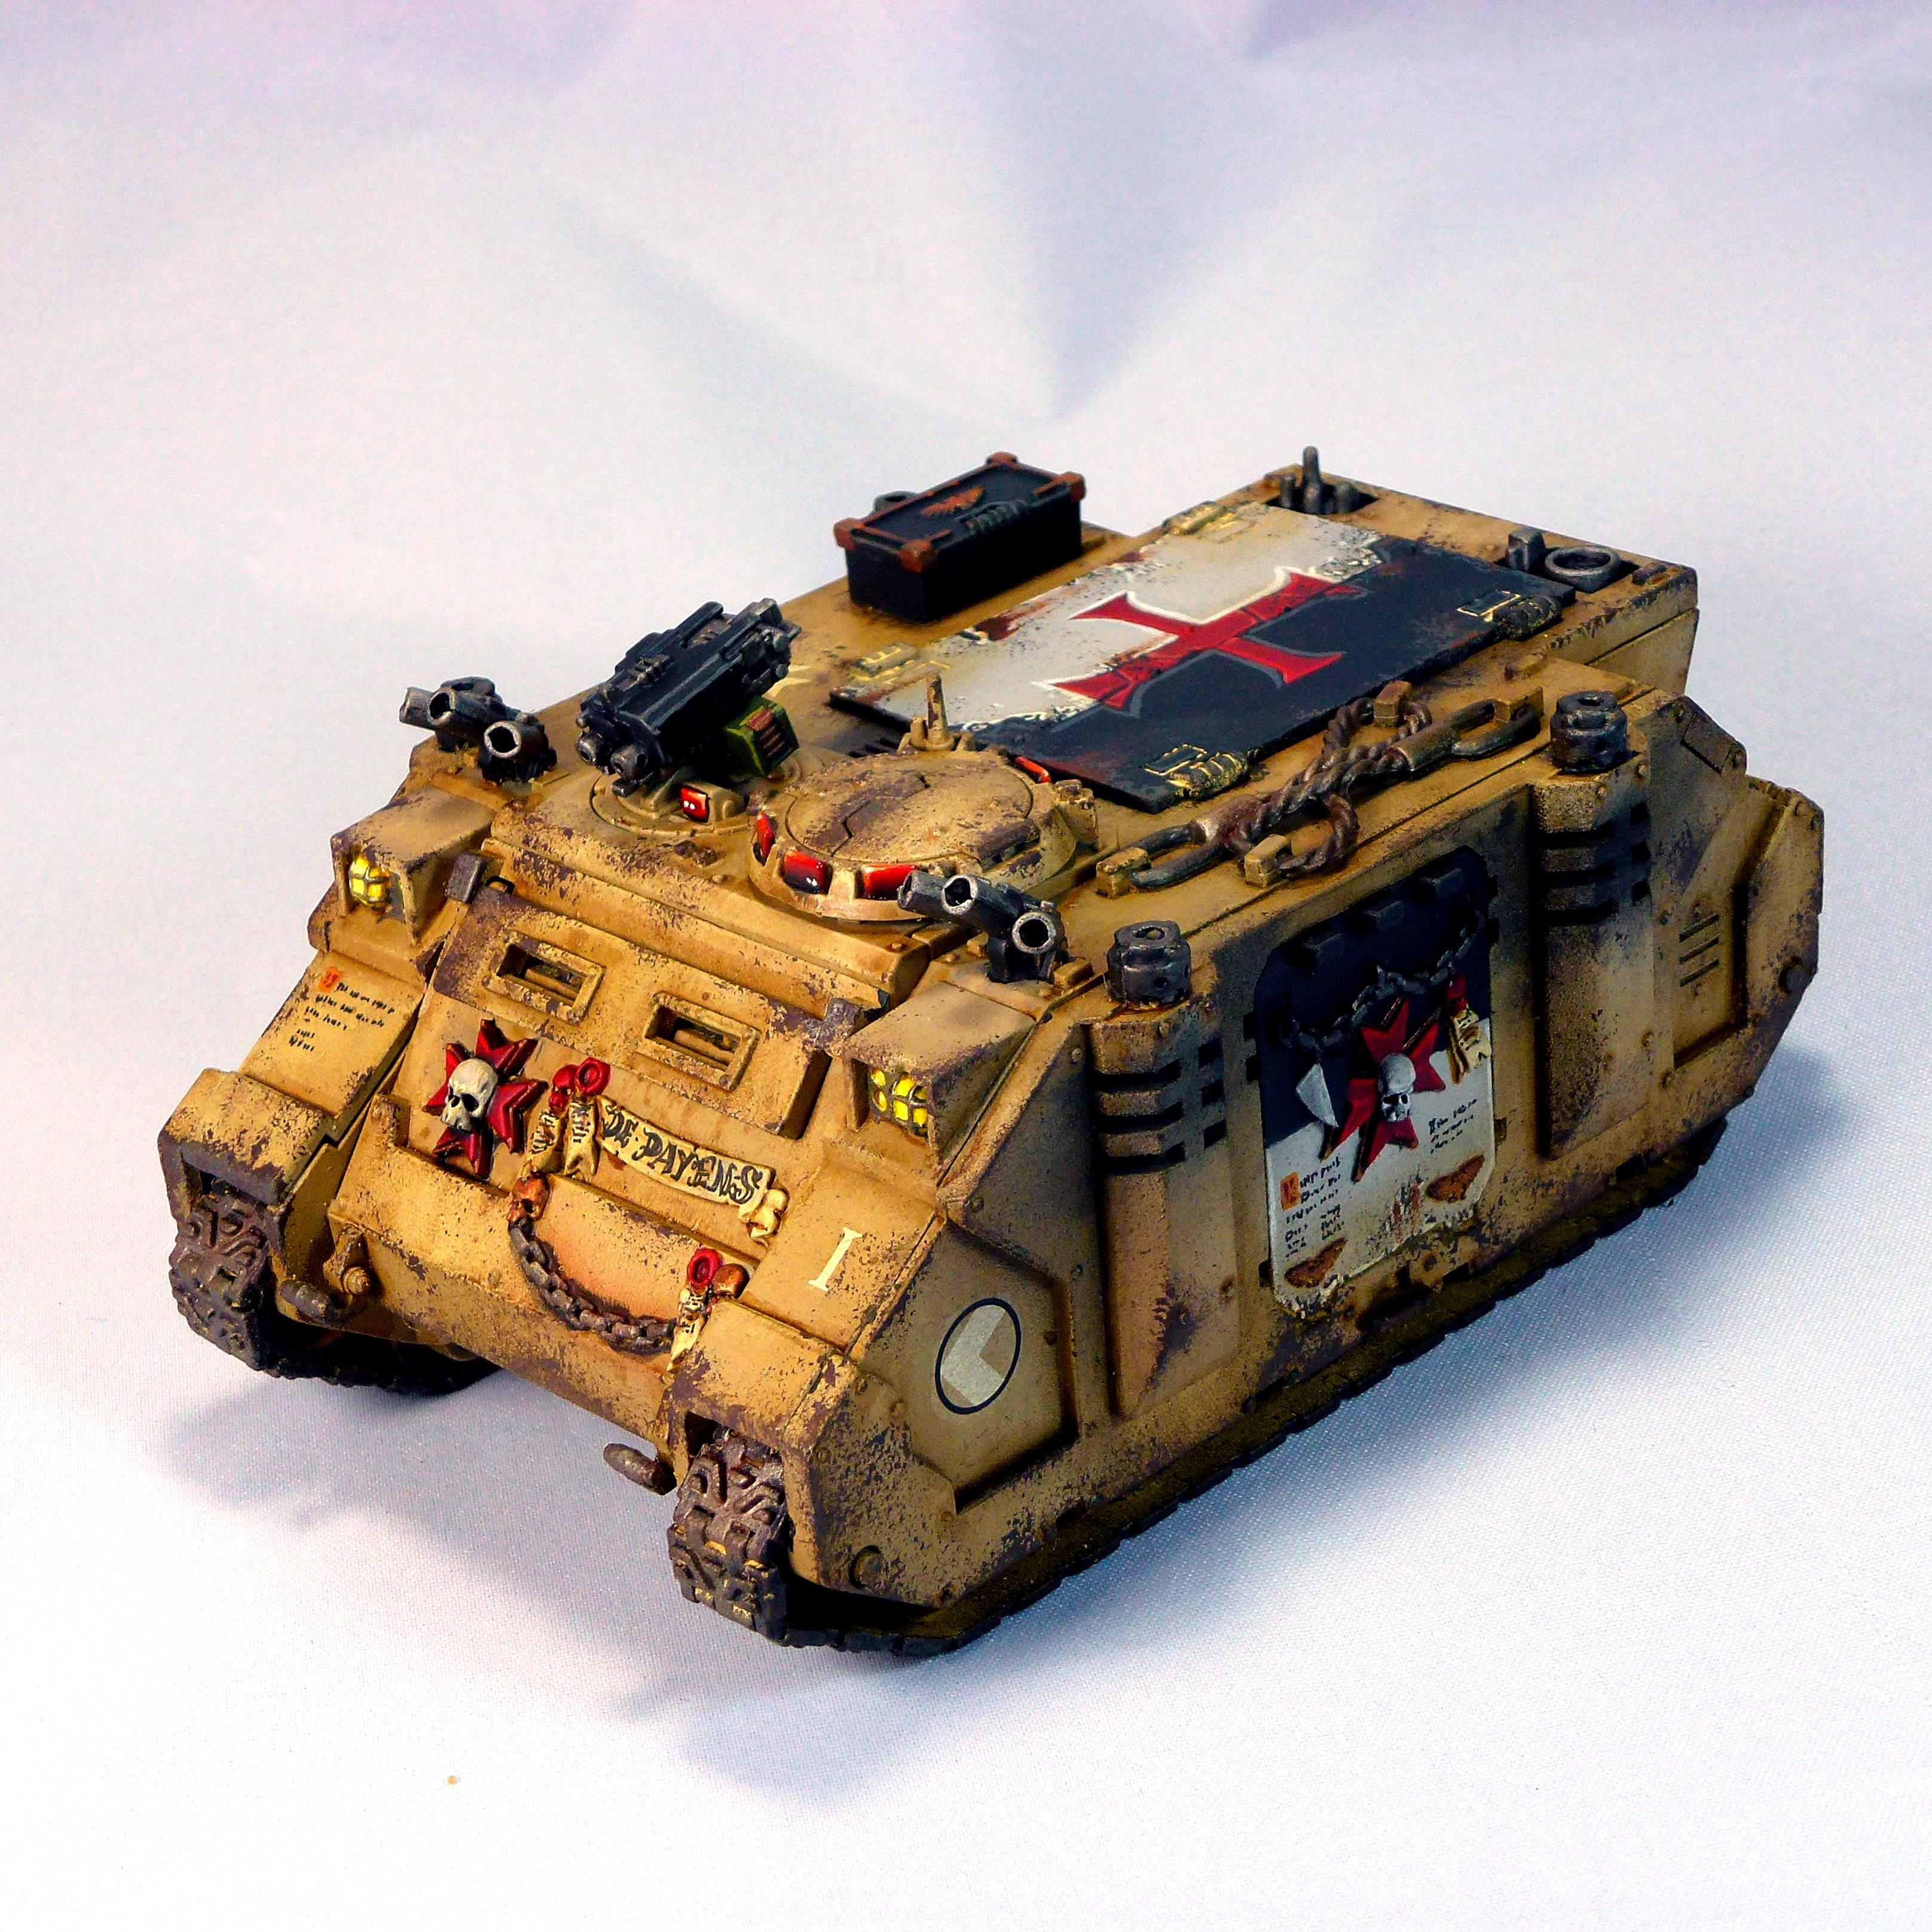 Desert, Knights, Lascannon, Razorback, Rhino, Sand, Space, Space Marines, Tan, Tank, Templar, Vehicle, Weathered, Yellow